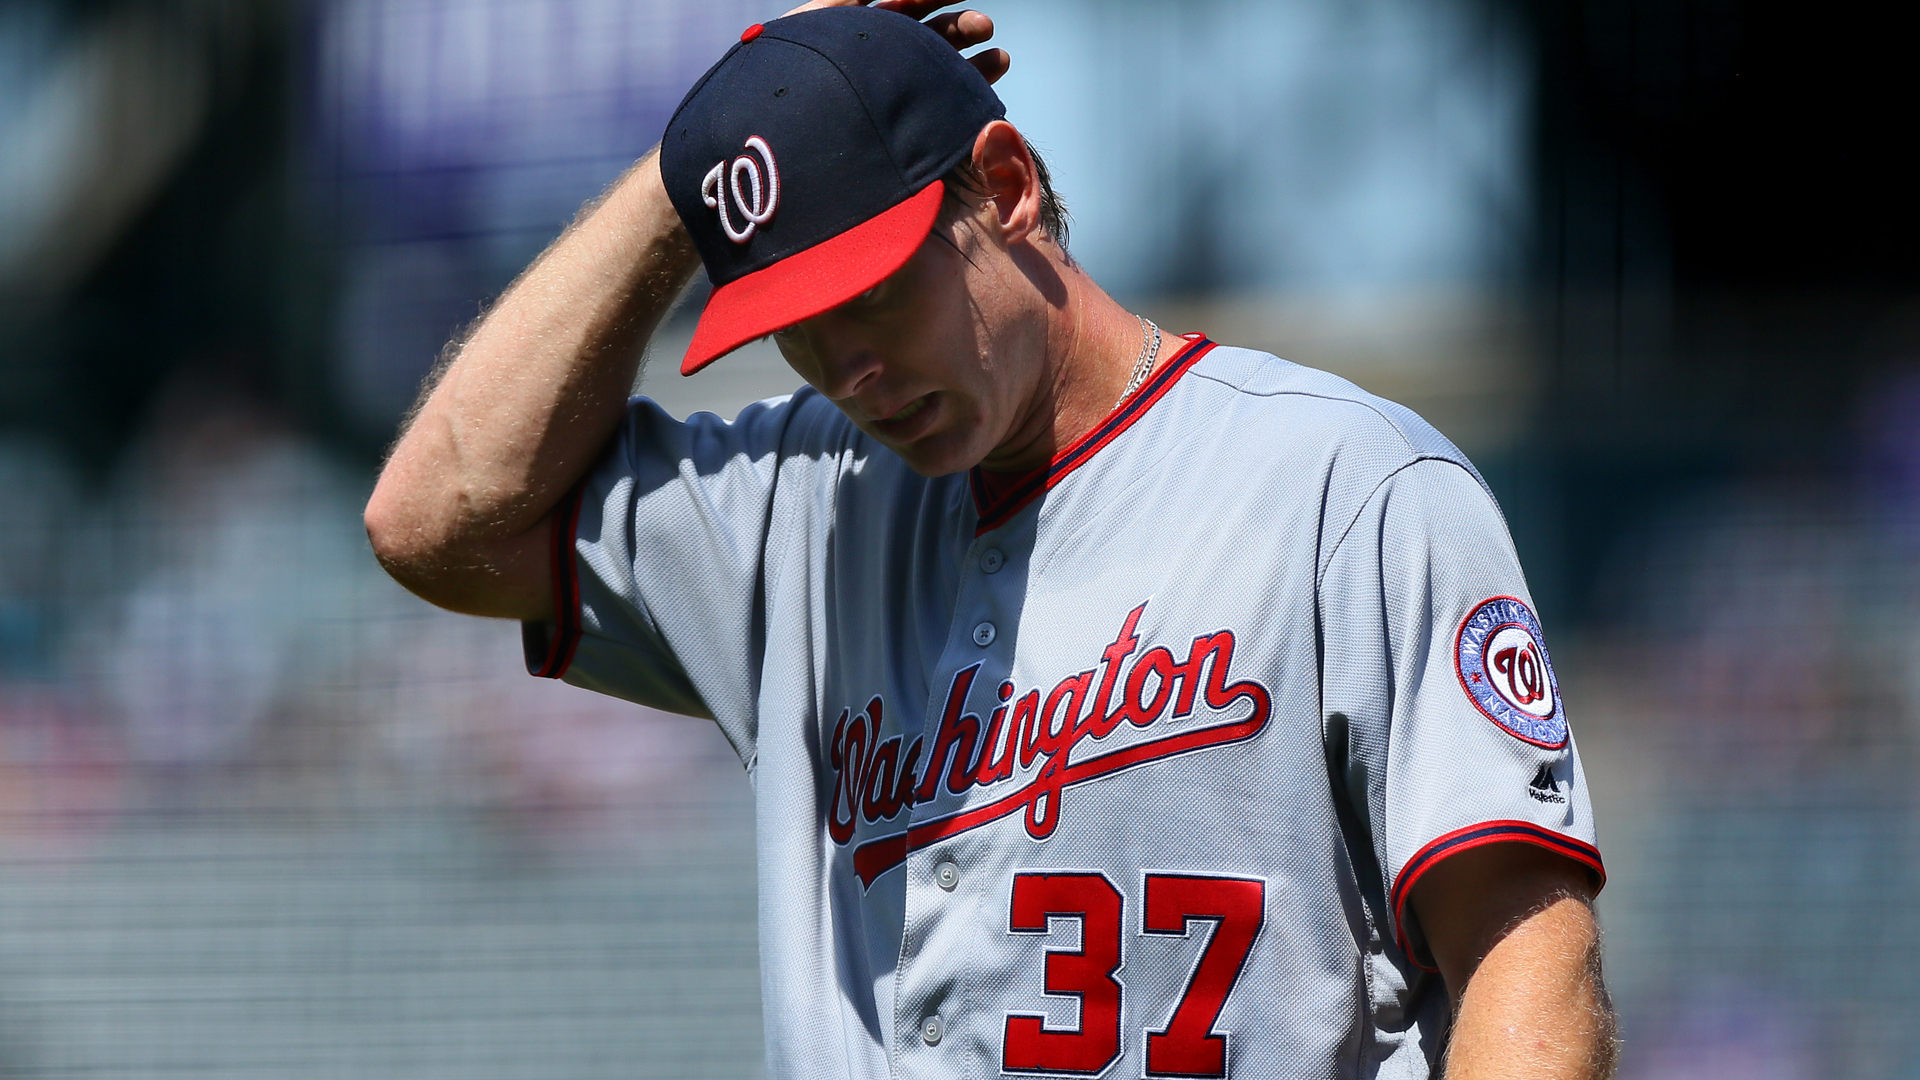 Nationals vs. Diamondbacks 2017 odds: Scherzer heads to the hill for Washington